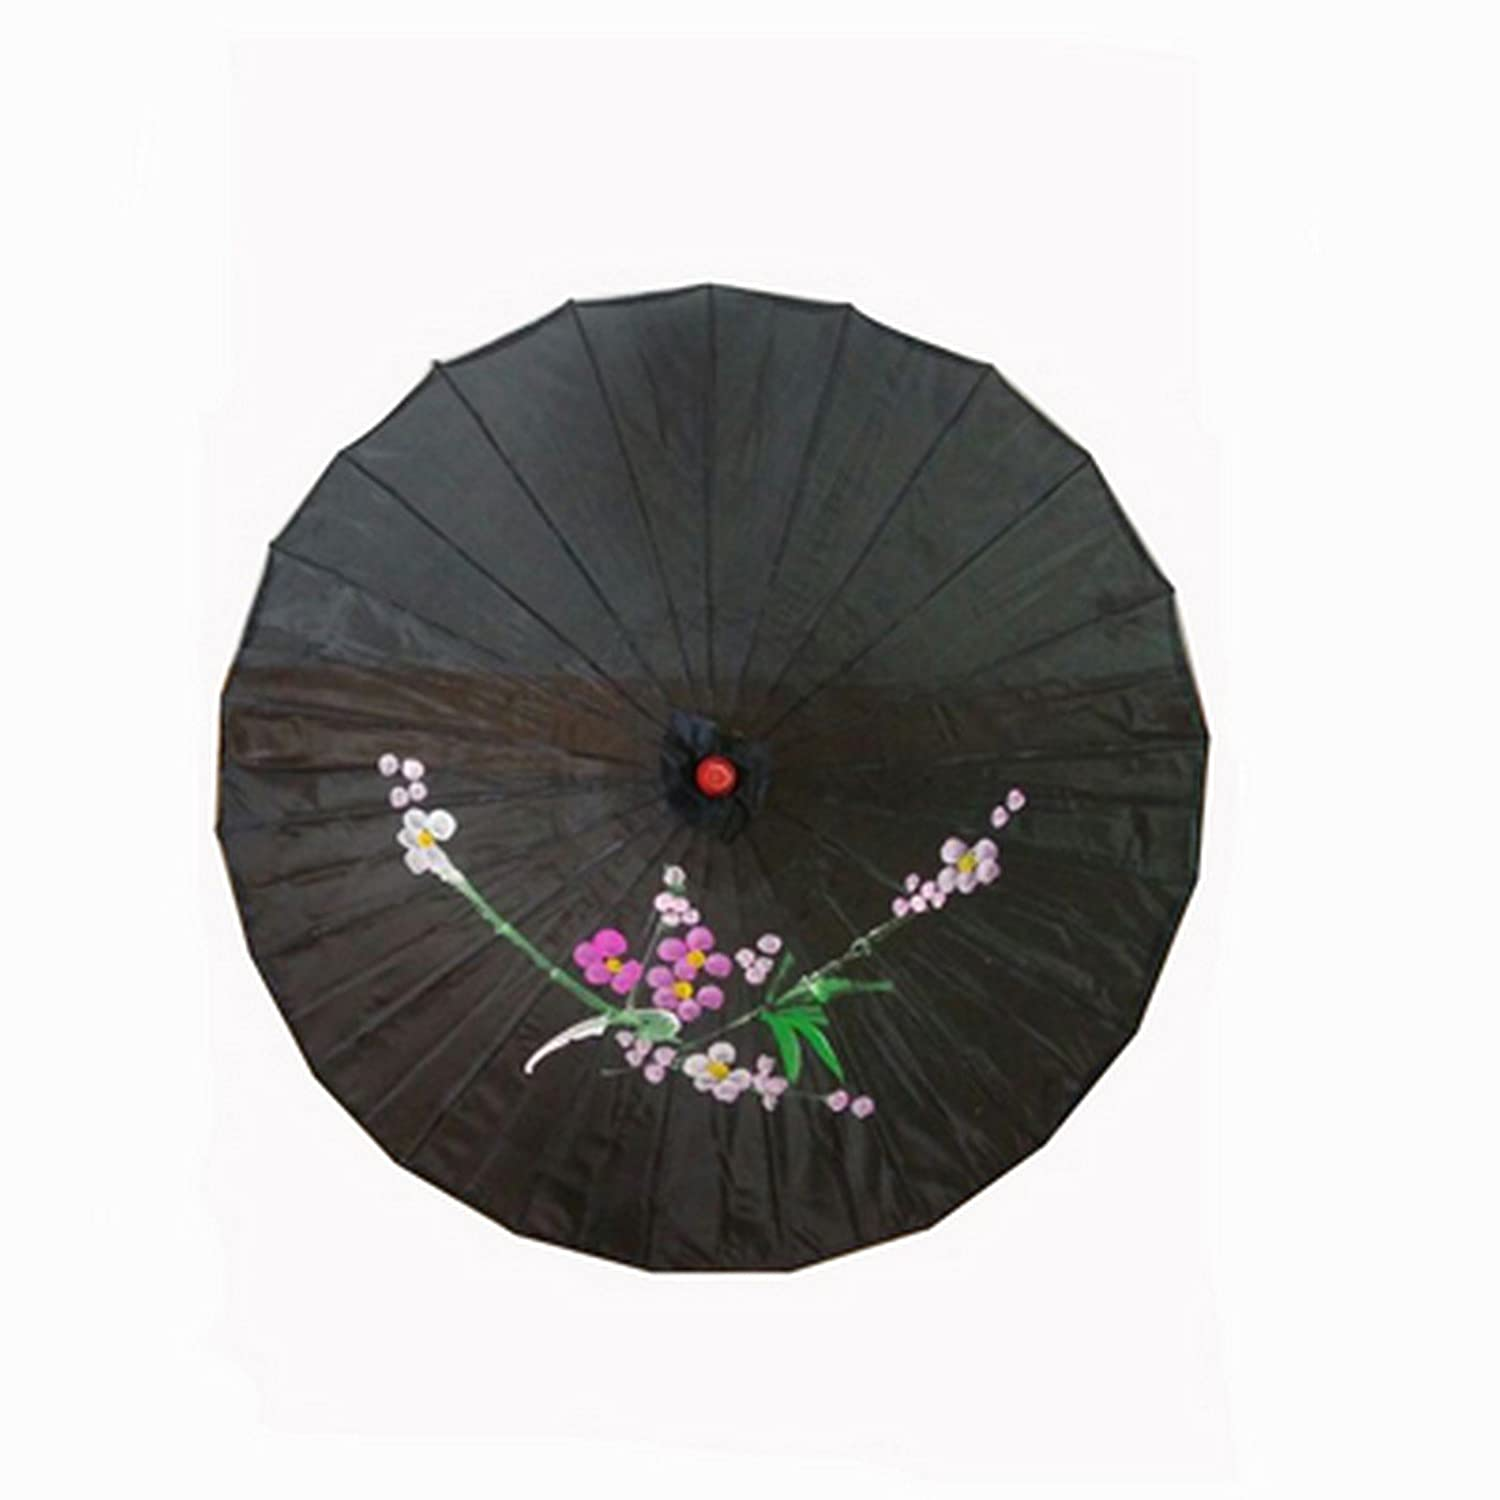 Vintage Style Parasols and Umbrellas JapanBargain Chinese Oriental Parasol Kasi Umbrella Black $9.99 AT vintagedancer.com